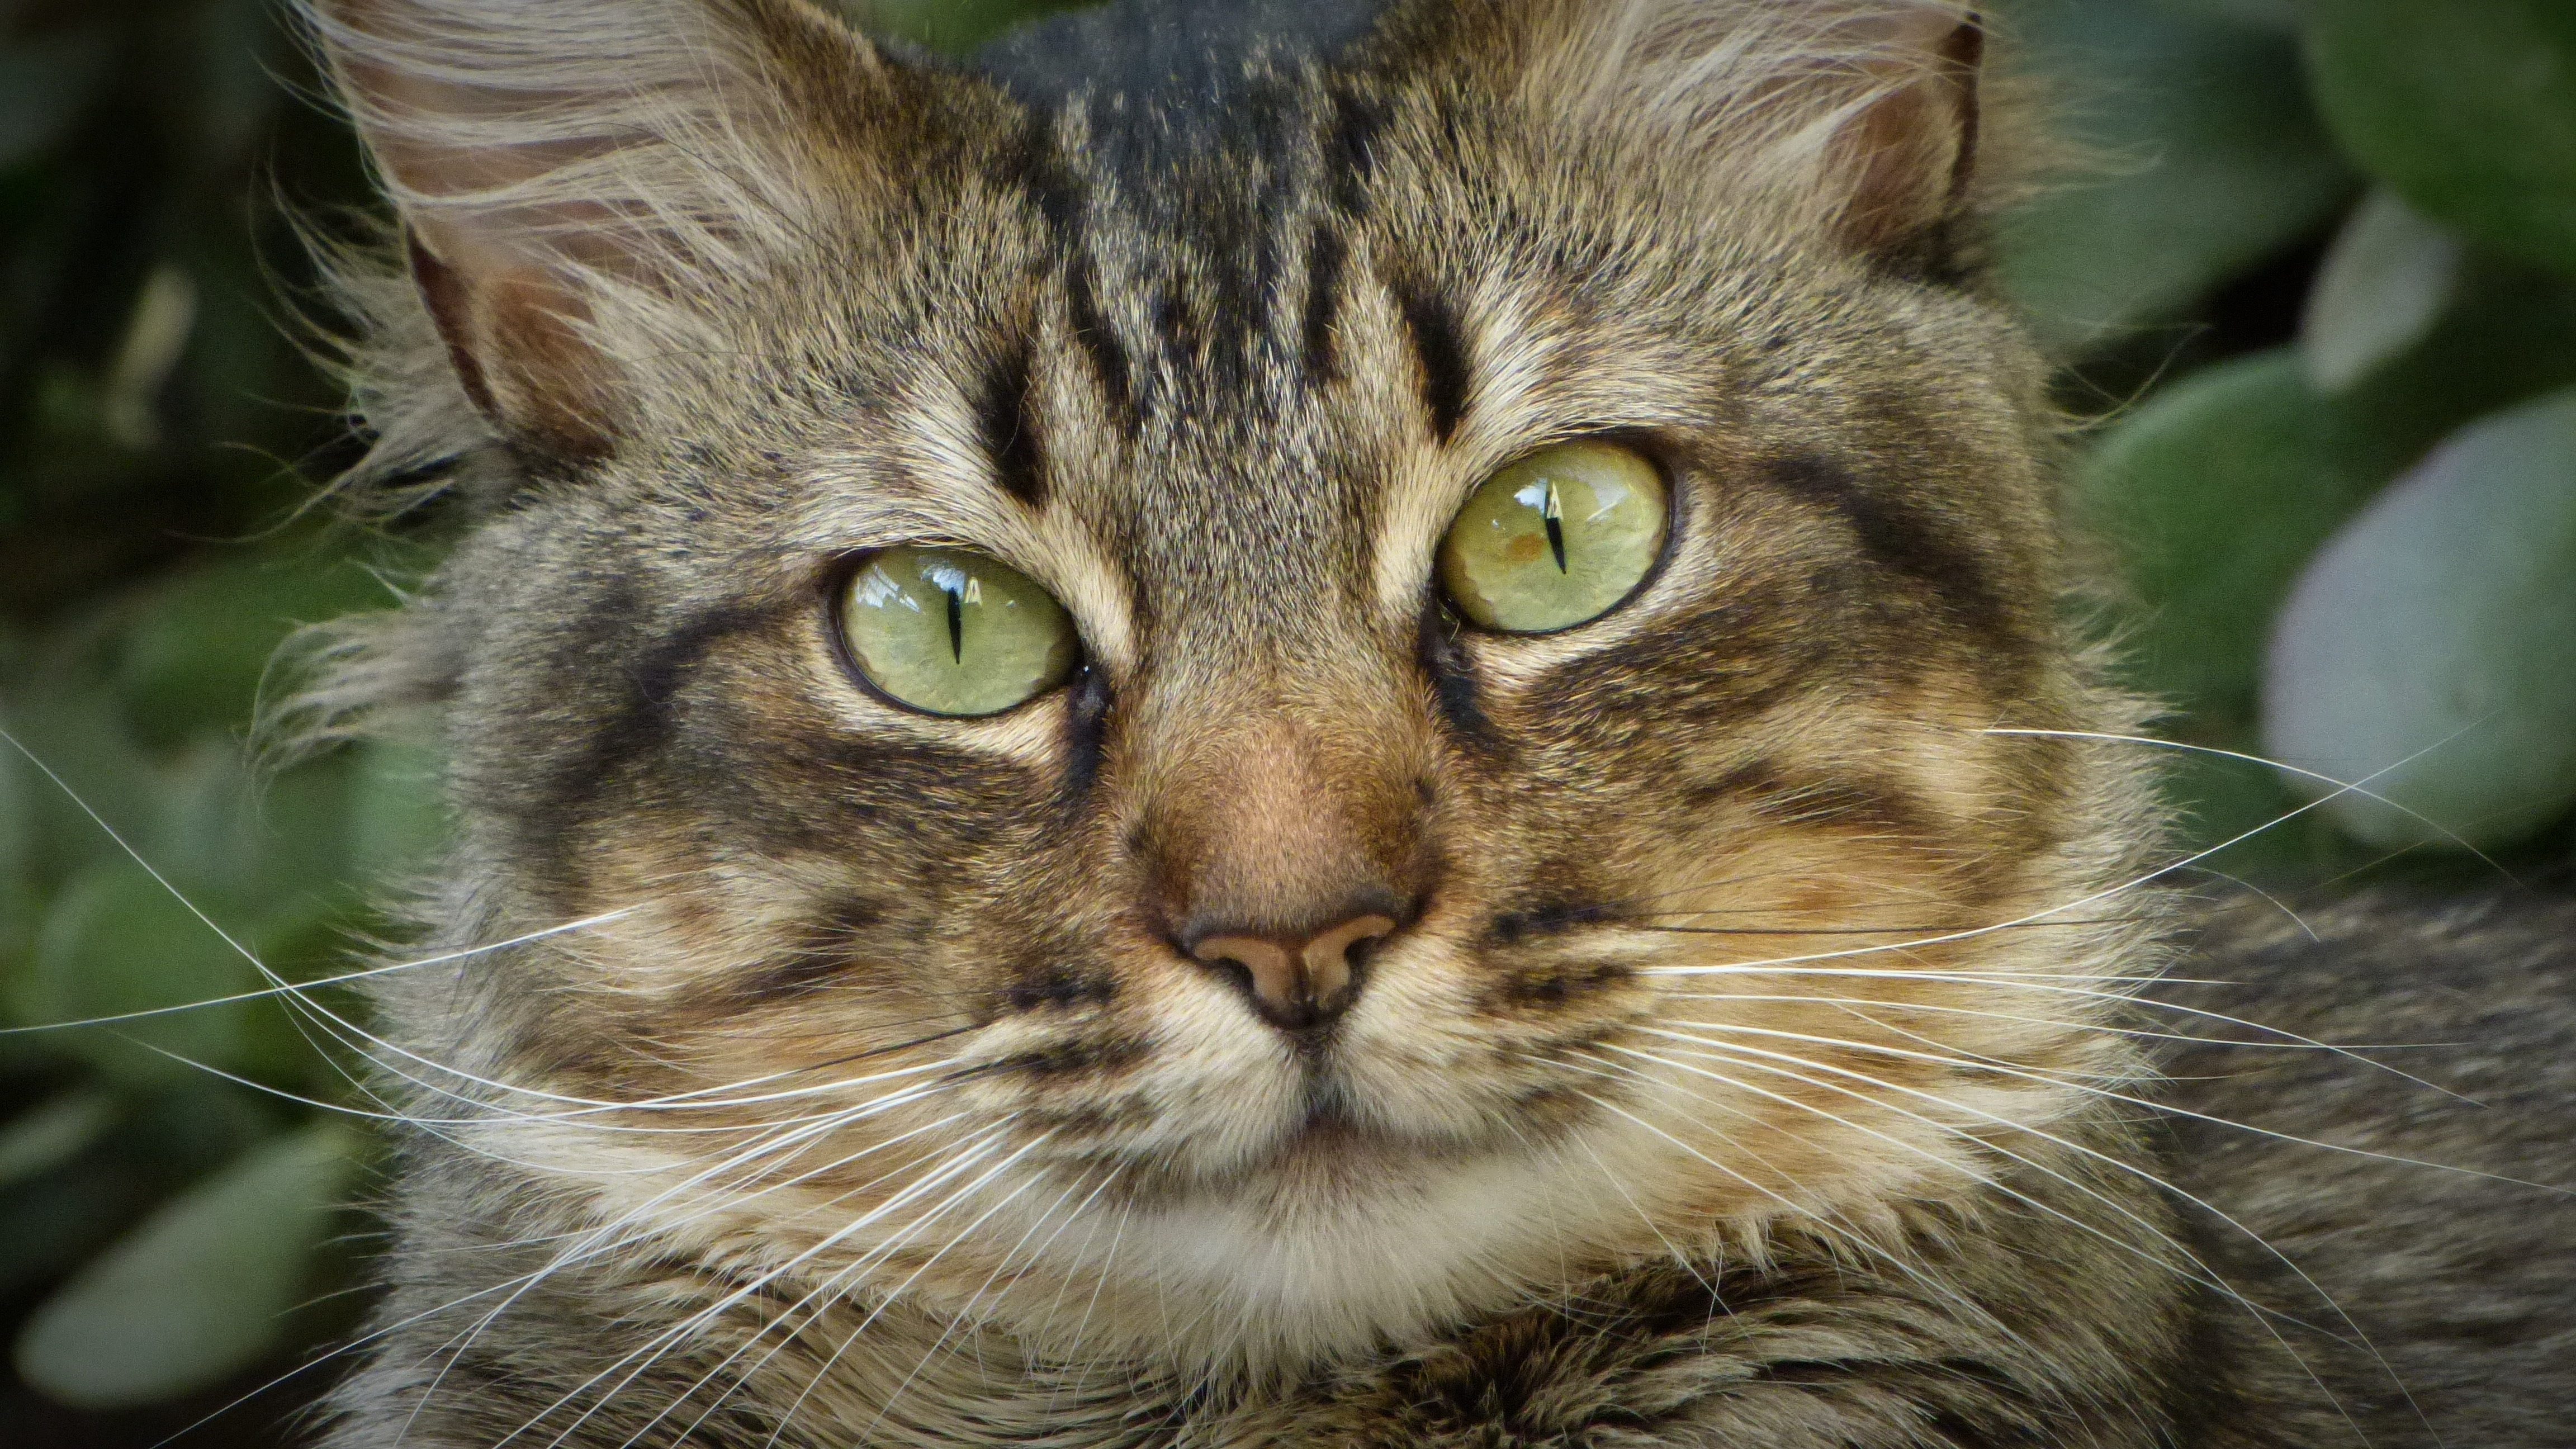 152901 download wallpaper Animals, Cat, Muzzle, Fluffy, Nice, Sweetheart, Home, Domestic screensavers and pictures for free